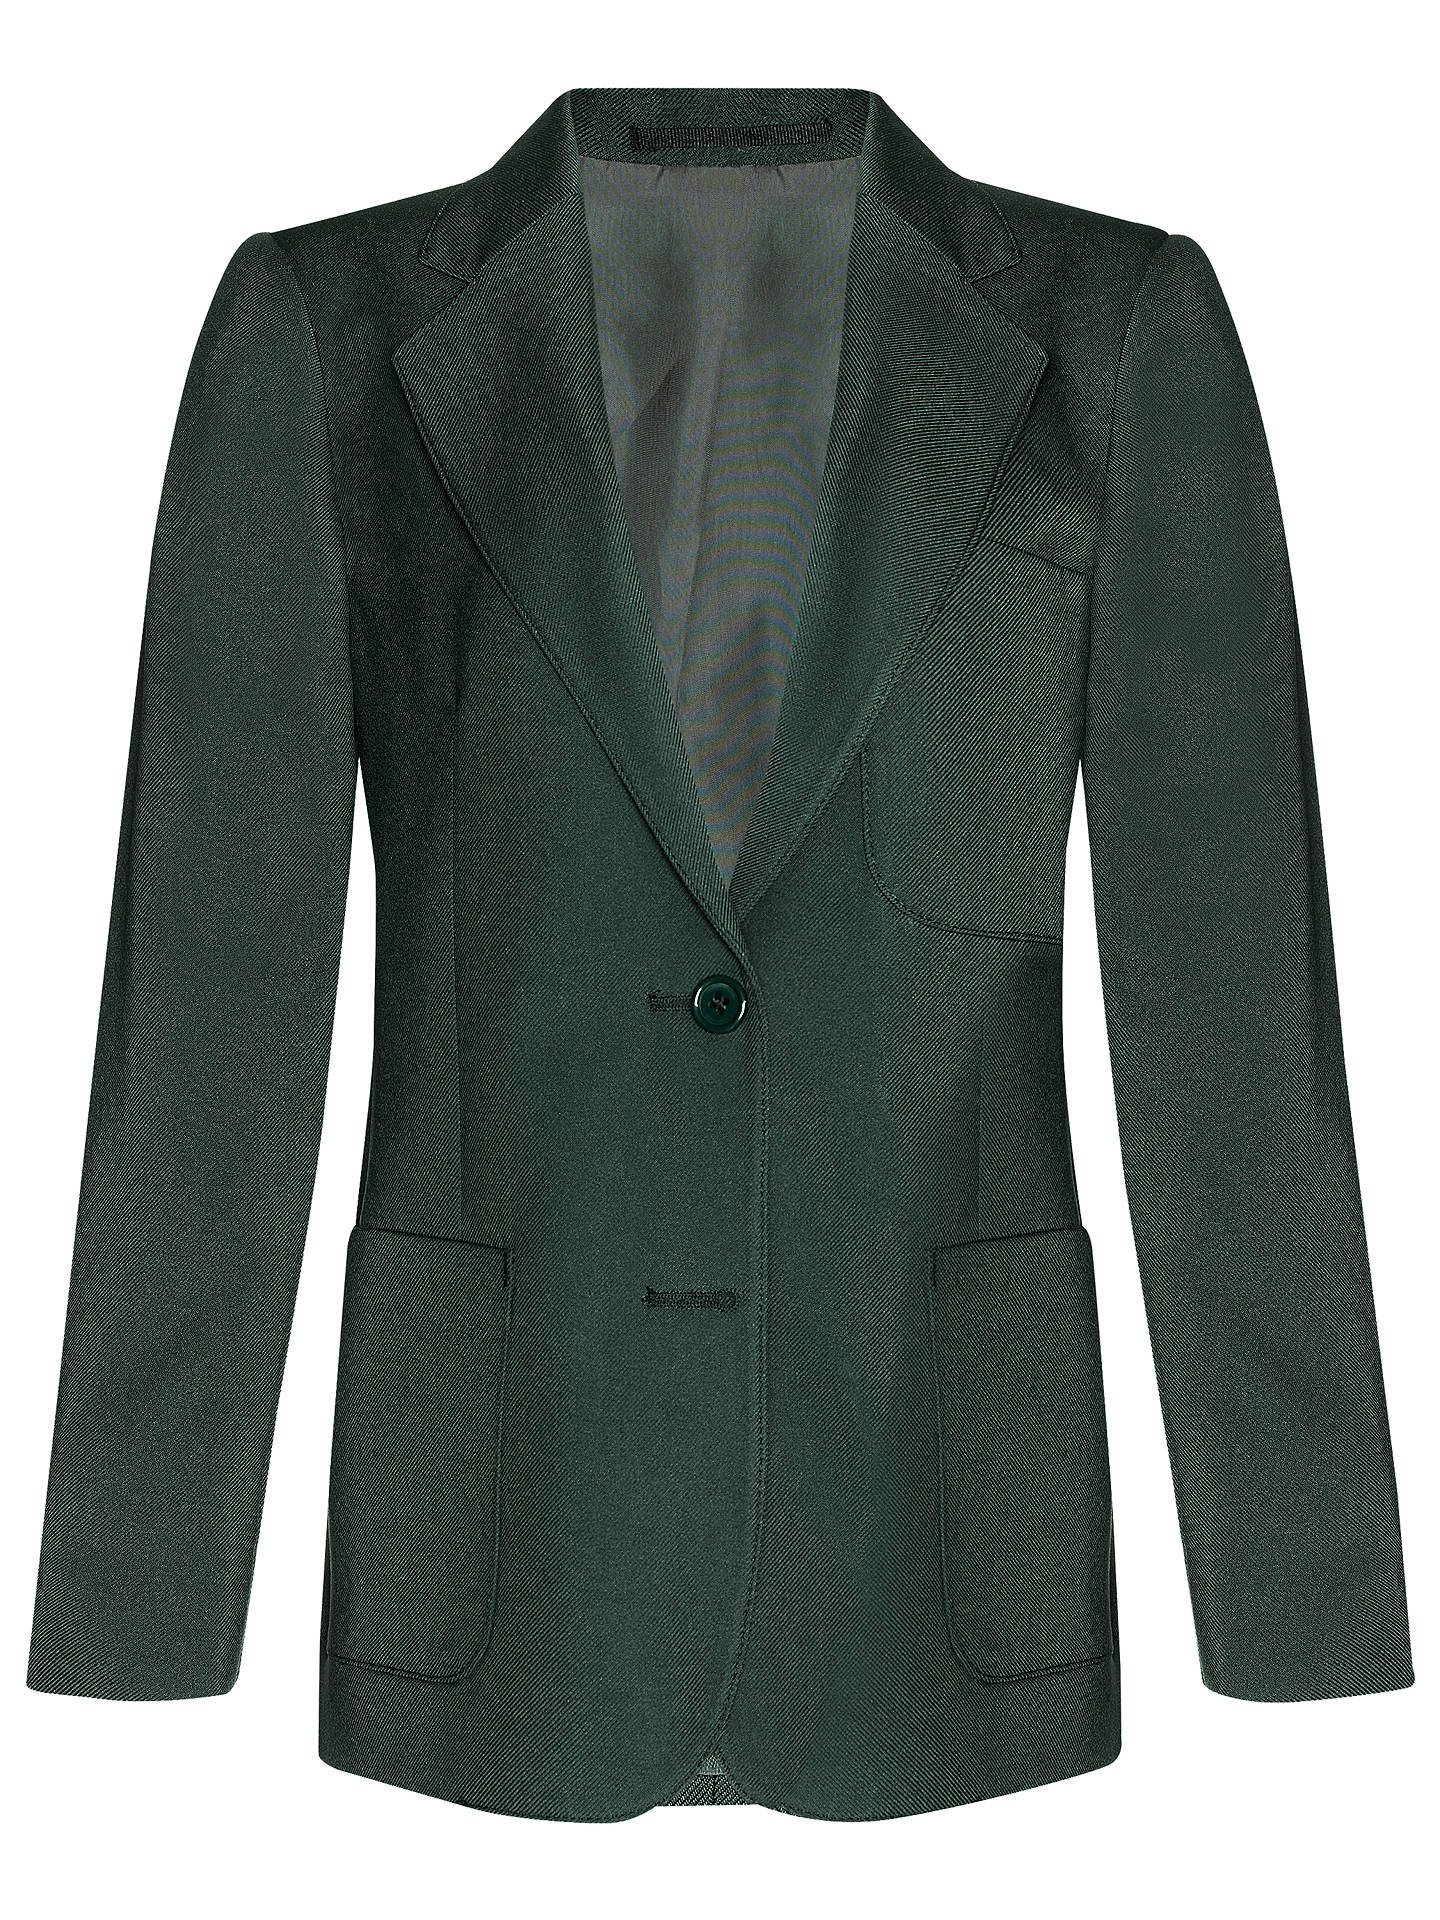 "BuyJohn Lewis & Partners Girls' School Eco Blazer, Bottle Green, Chest 22"" / 3-4 years Online at johnlewis.com"